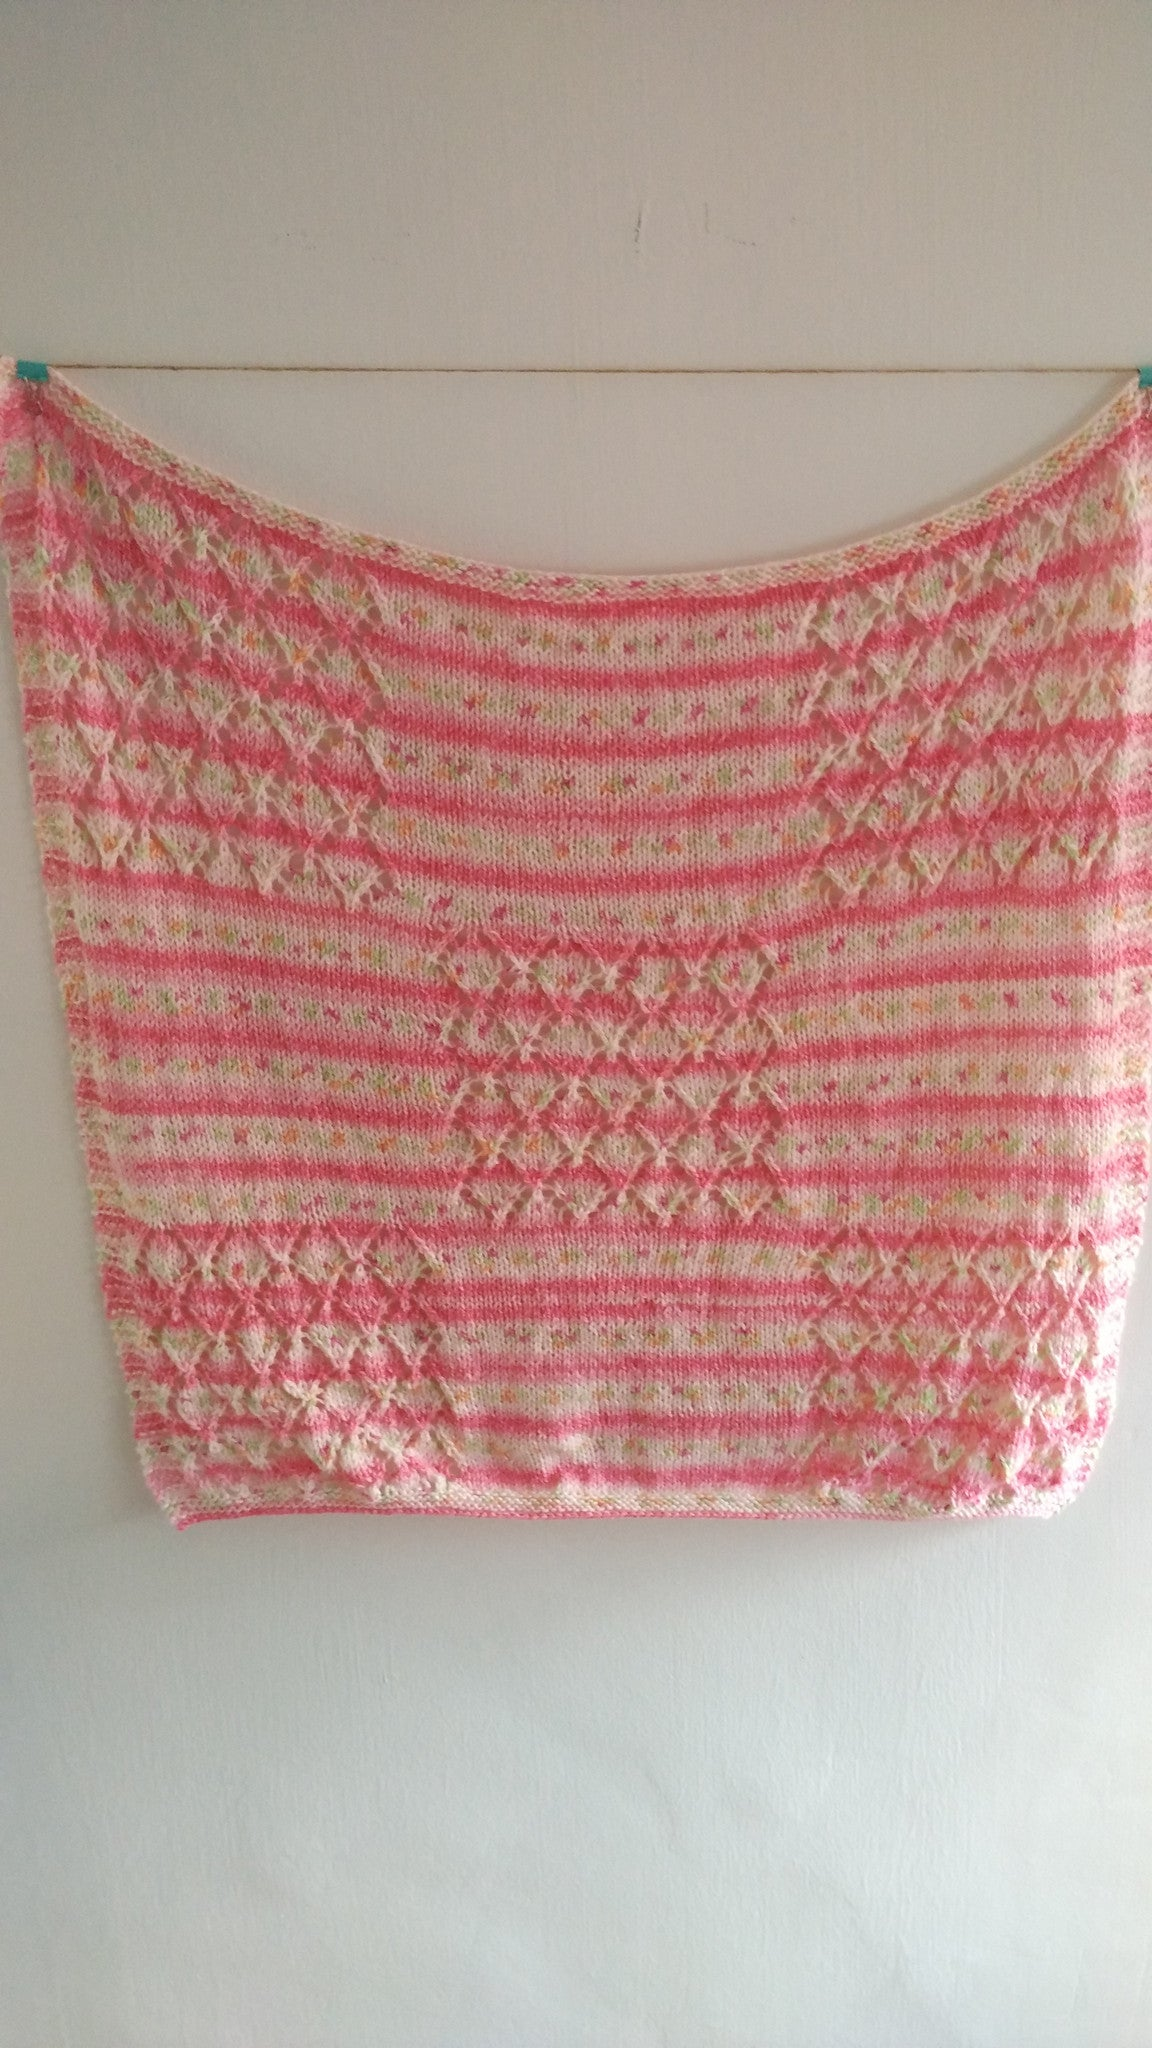 Unlimited Guided Project - Knit a Lacy Baby Blanket